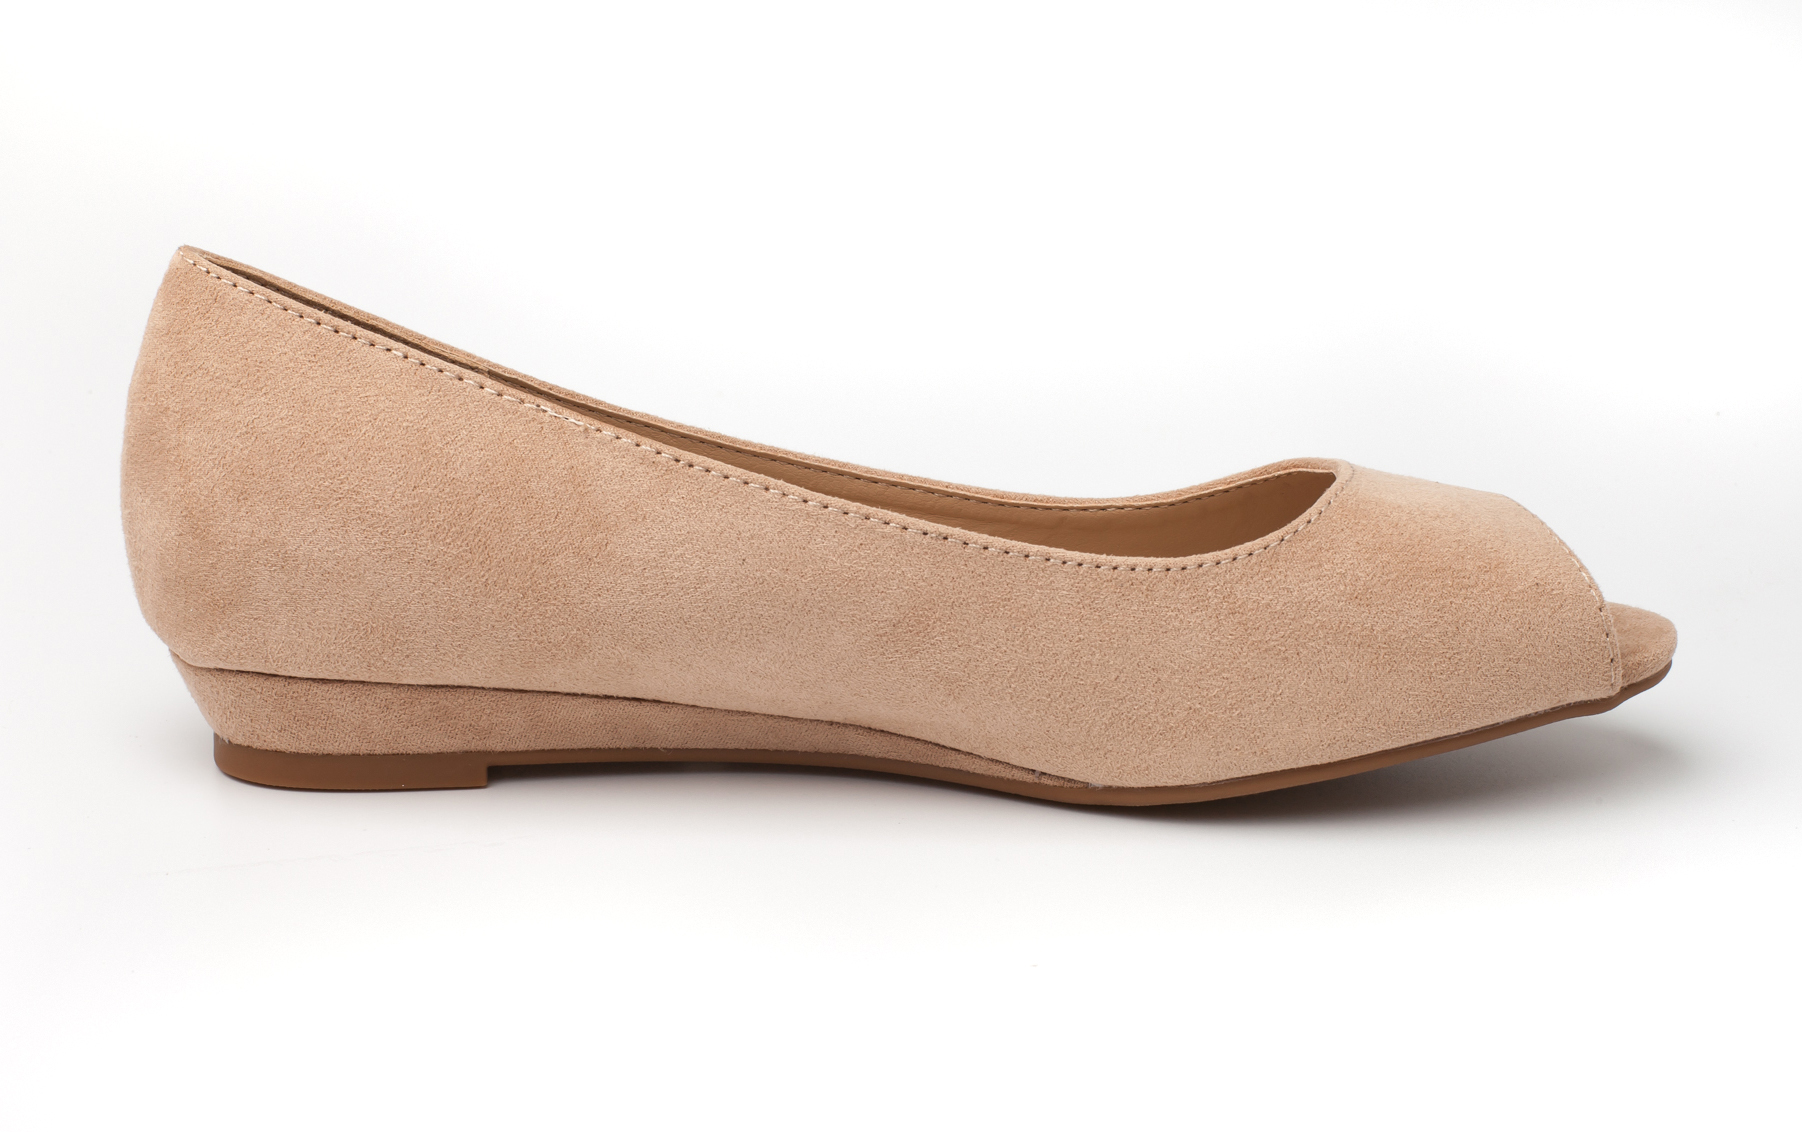 DREAM-PAIRS-Womens-Ballet-Flats-Low-Heel-Open-Toe-Slip-On-Dress-Flat-Shoes thumbnail 40